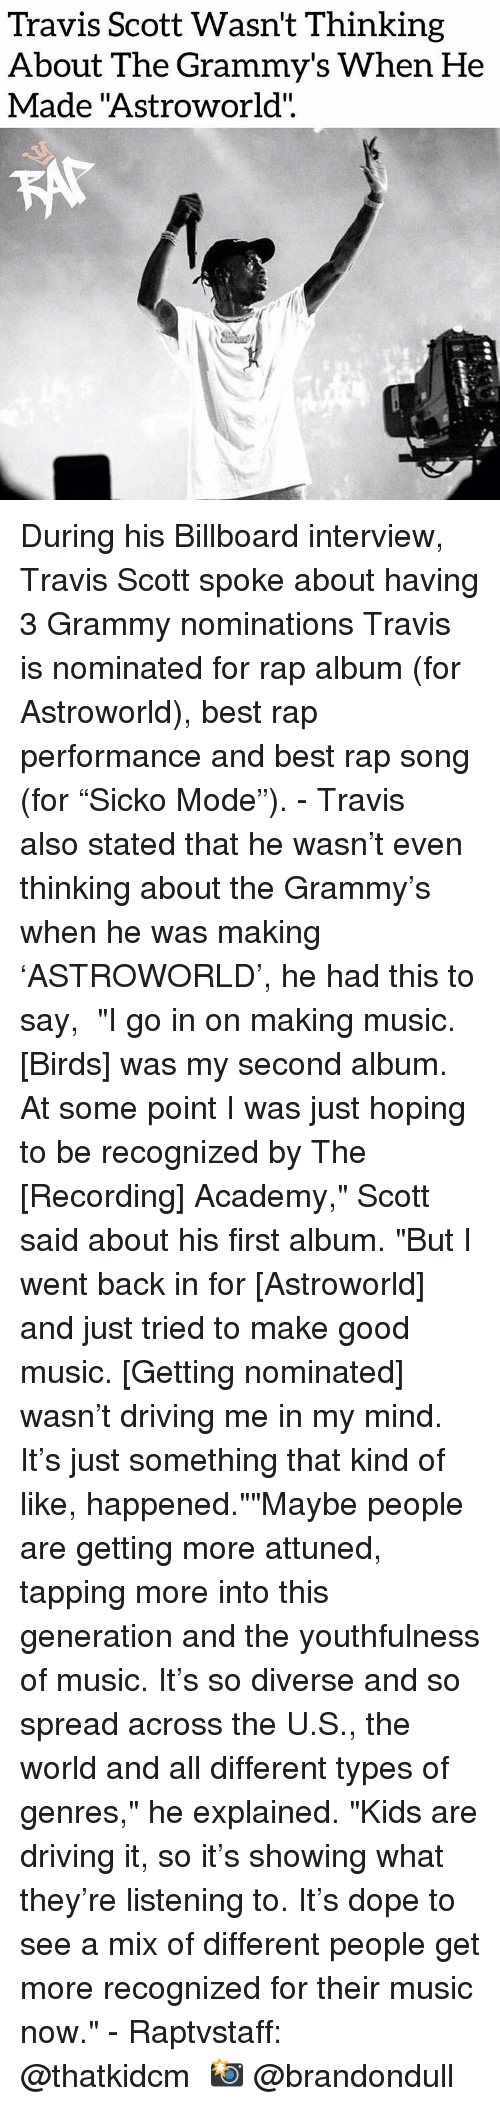 "Billboard, Dope, and Driving: Travis Scott Wasn't Thinking  About The Grammy's When He  Made ""Astroworld"".  CO During his Billboard interview, Travis Scott spoke about having 3 Grammy nominations Travis is nominated for rap album (for Astroworld), best rap performance and best rap song (for ""Sicko Mode"").⁣ -⁣ Travis also stated that he wasn't even thinking about the Grammy's when he was making 'ASTROWORLD', he had this to say,⁣ ⁣ ""I go in on making music. [Birds] was my second album. At some point I was just hoping to be recognized by The [Recording] Academy,"" Scott said about his first album. ""But I went back in for [Astroworld] and just tried to make good music. [Getting nominated] wasn't driving me in my mind. It's just something that kind of like, happened.""""Maybe people are getting more attuned, tapping more into this generation and the youthfulness of music. It's so diverse and so spread across the U.S., the world and all different types of genres,"" he explained. ""Kids are driving it, so it's showing what they're listening to. It's dope to see a mix of different people get more recognized for their music now.""⁣ -⁣ Raptvstaff: @thatkidcm⁣ 📸 @brandondull"